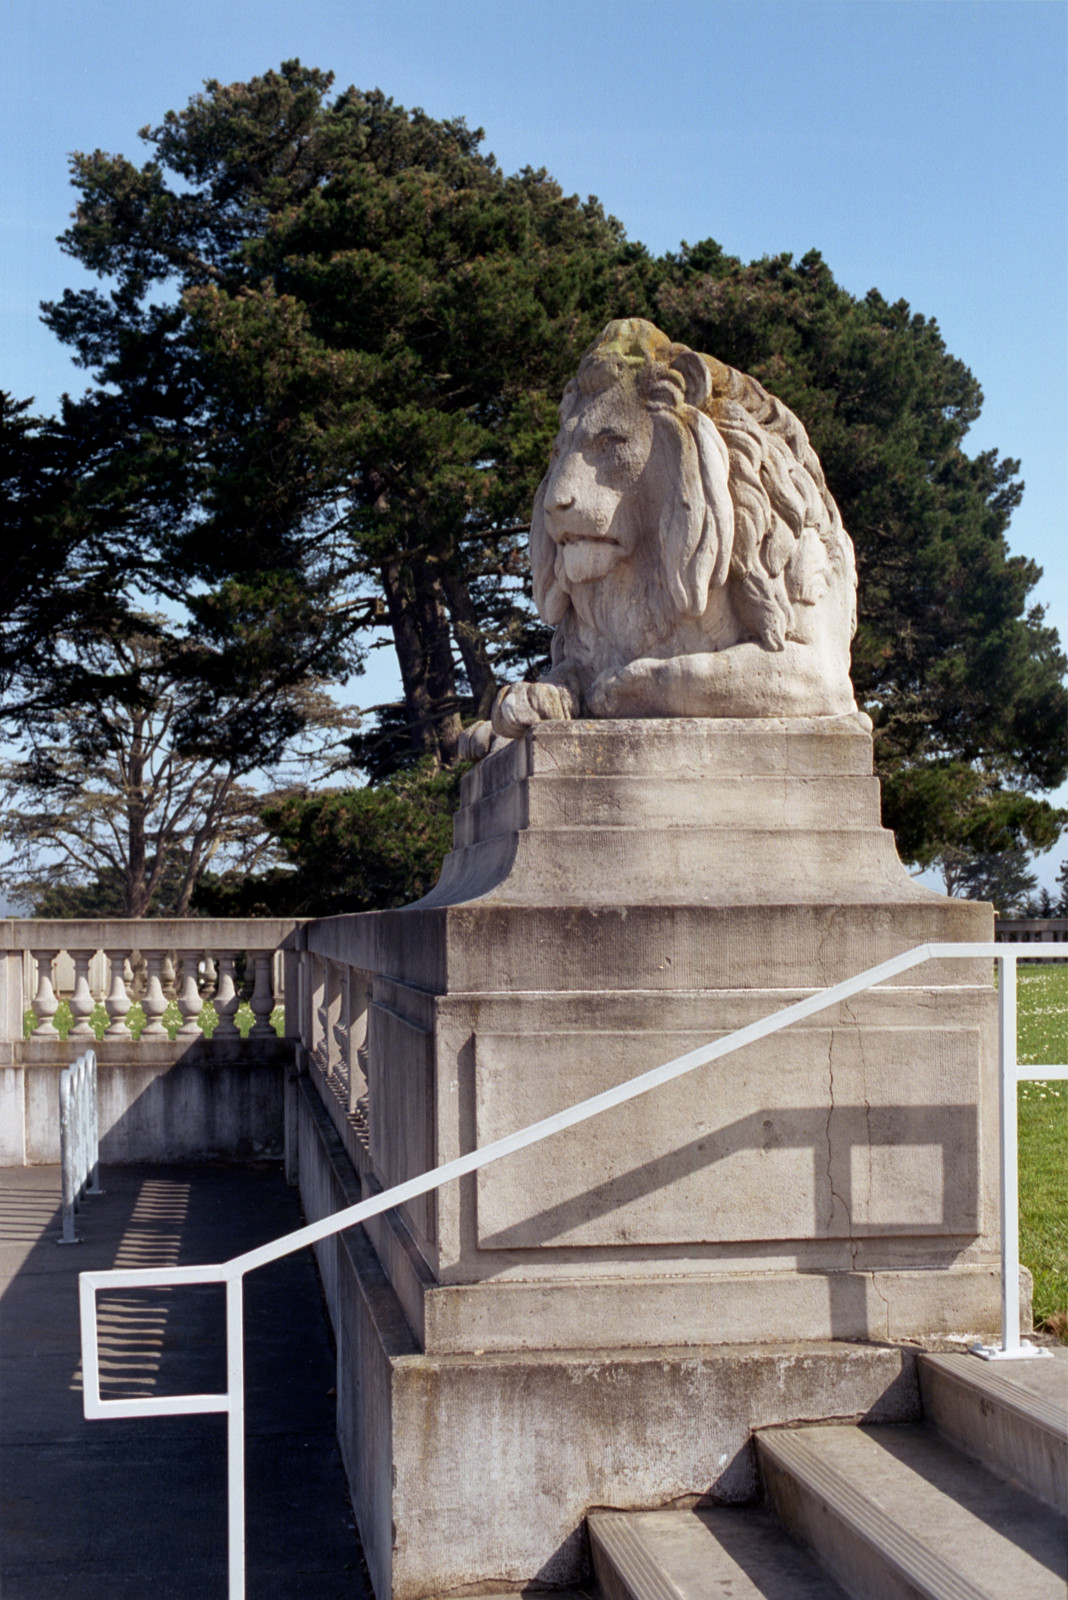 One of a pair of sculptures of lions guarding the entrance to the California Palace of the Legion of Honor.